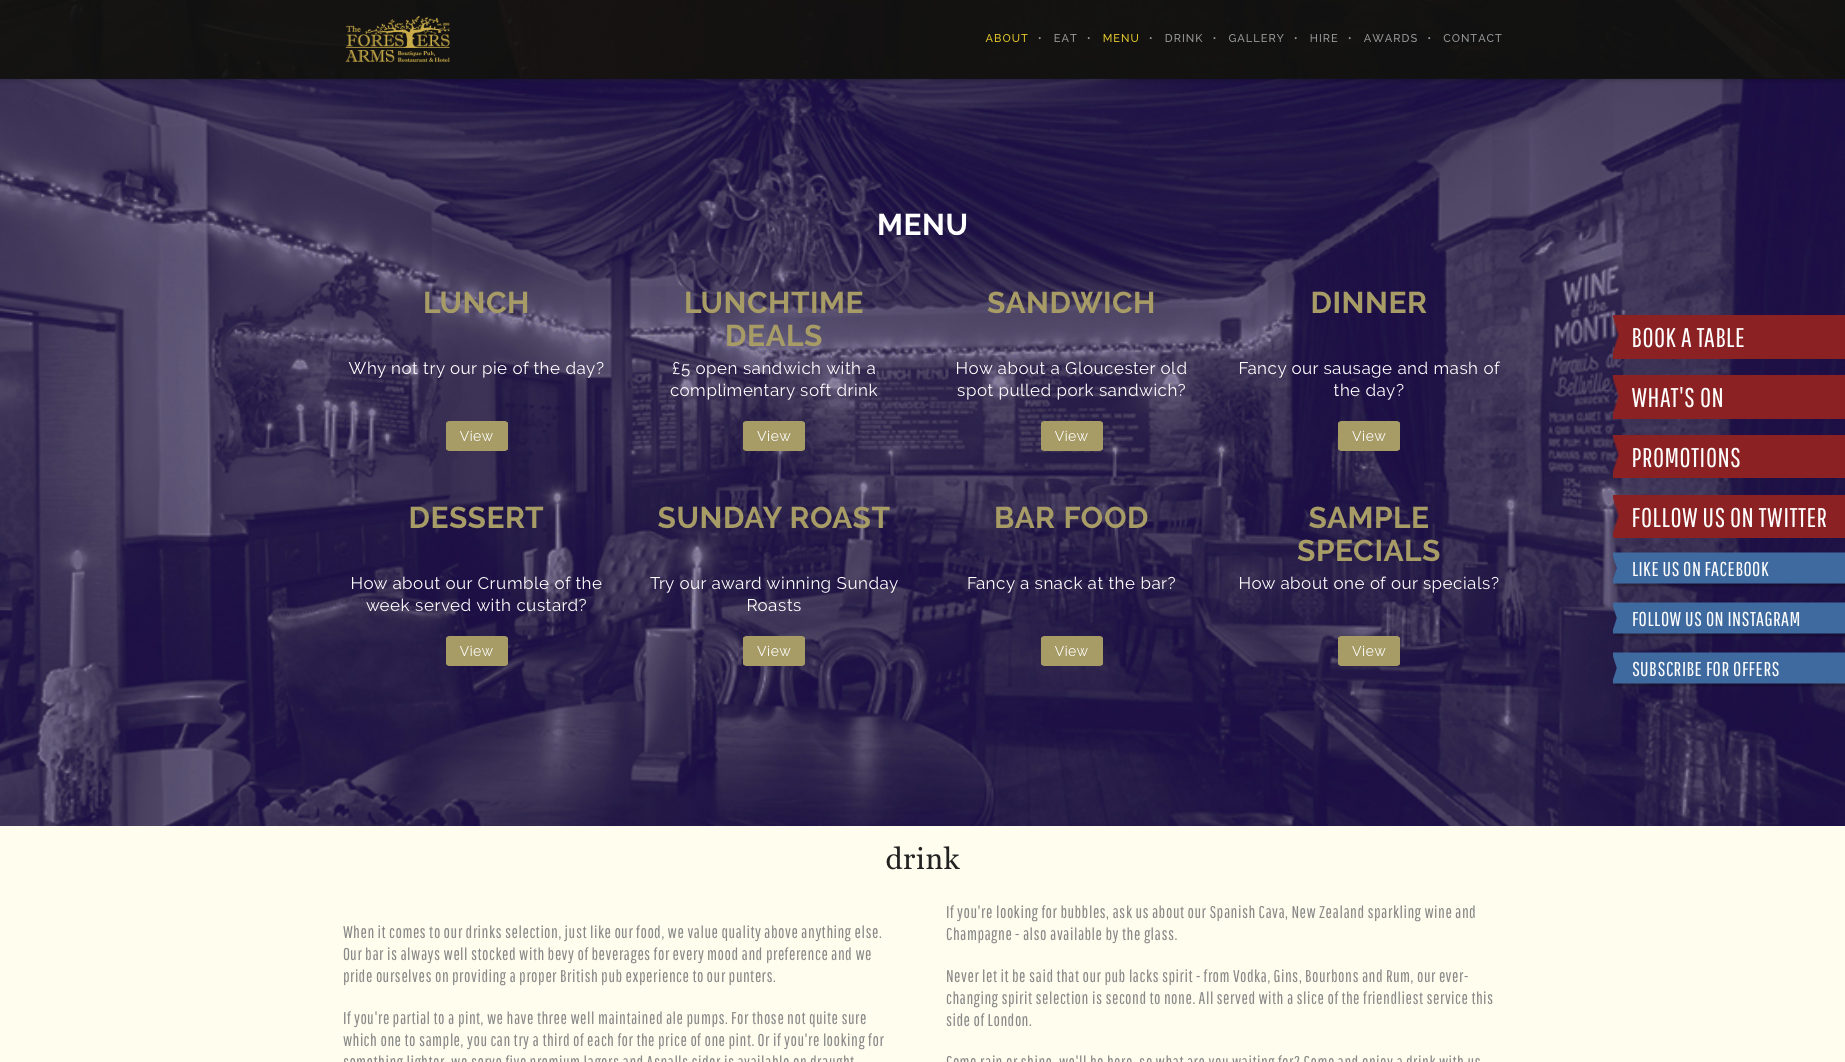 Menu section from the foresters website